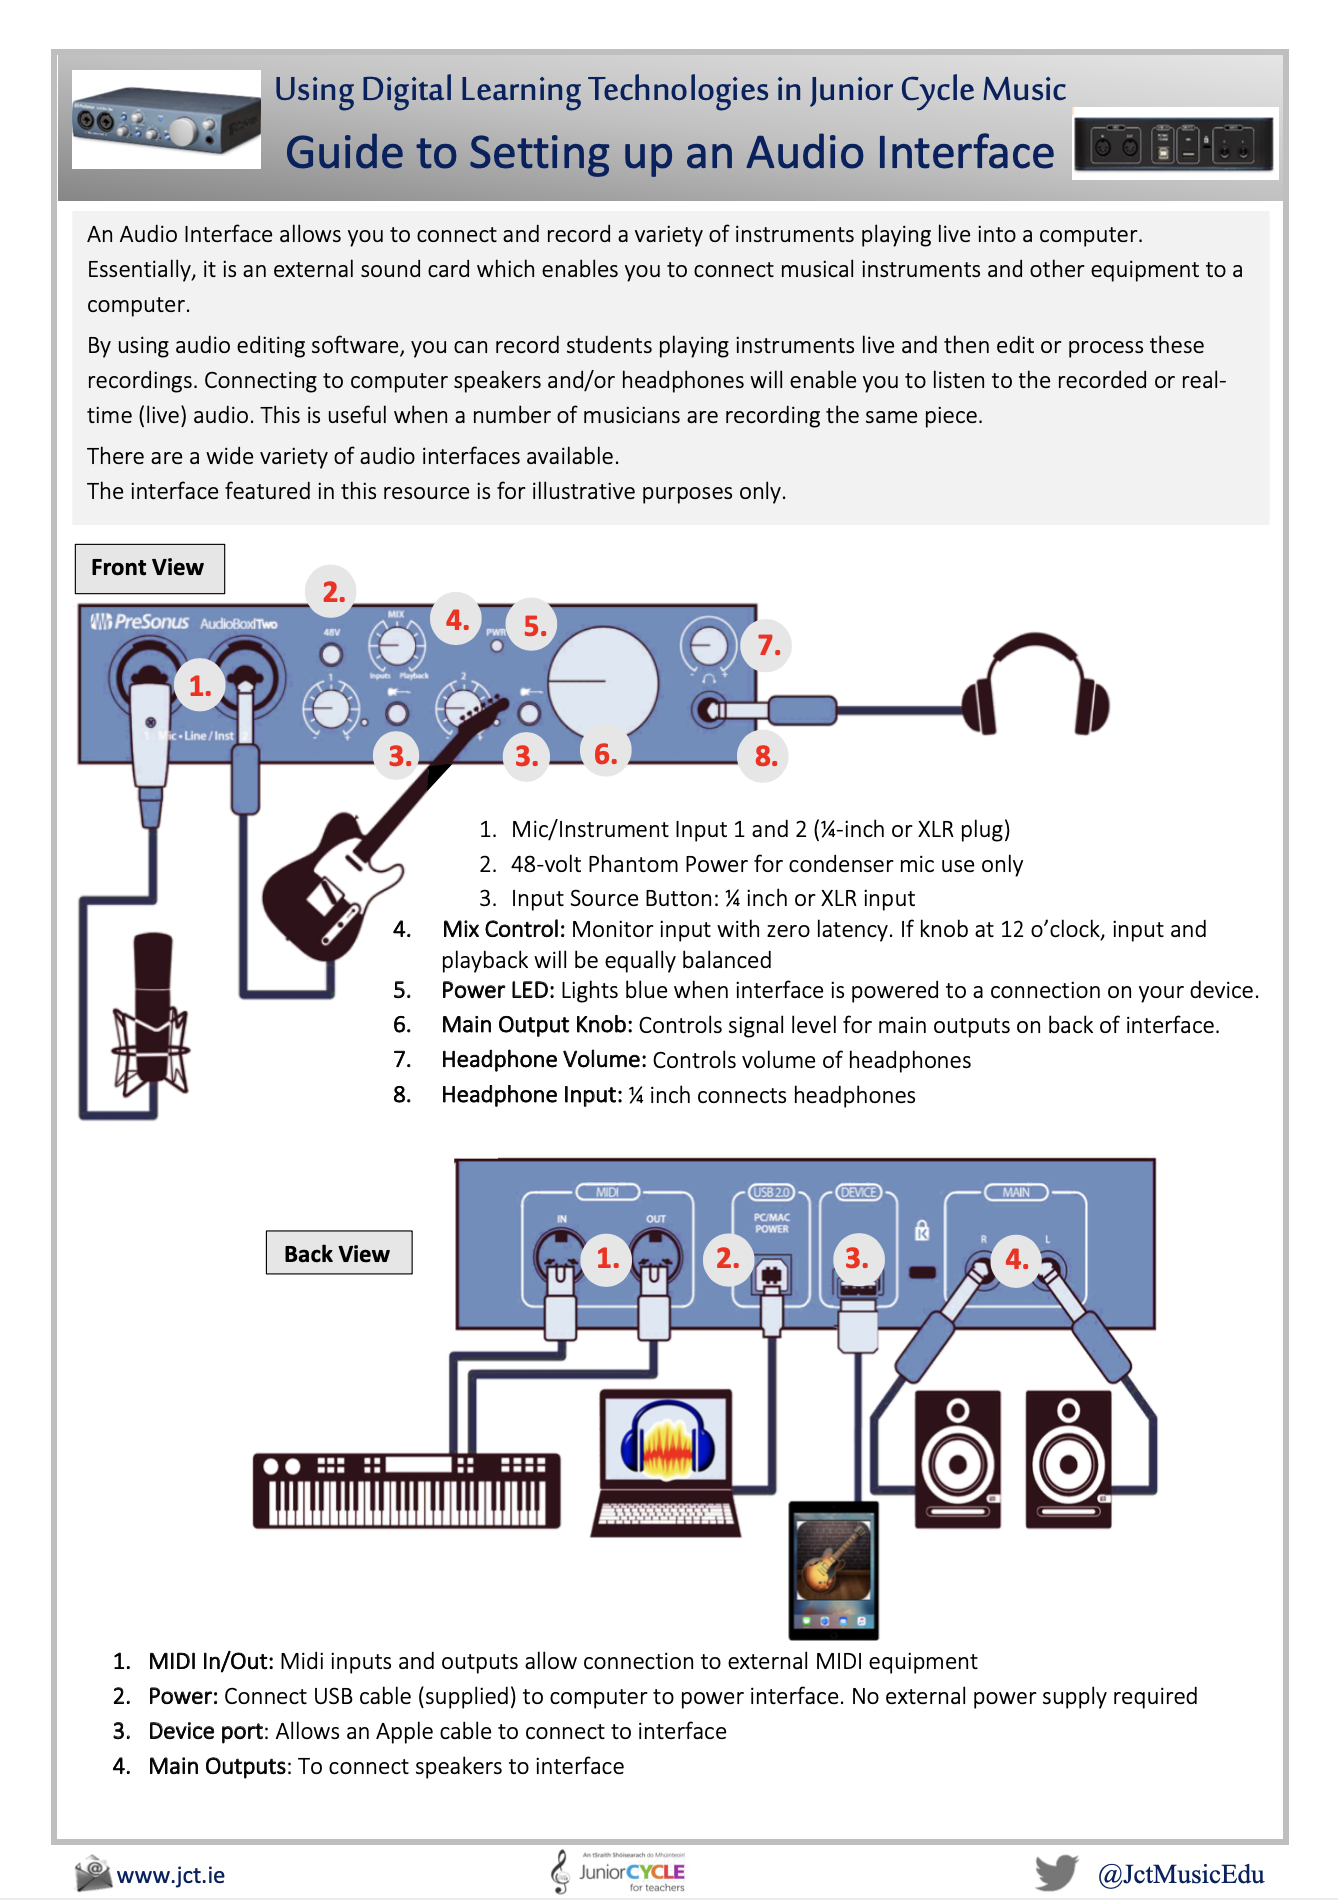 Guide to Setting up an Audio Interface